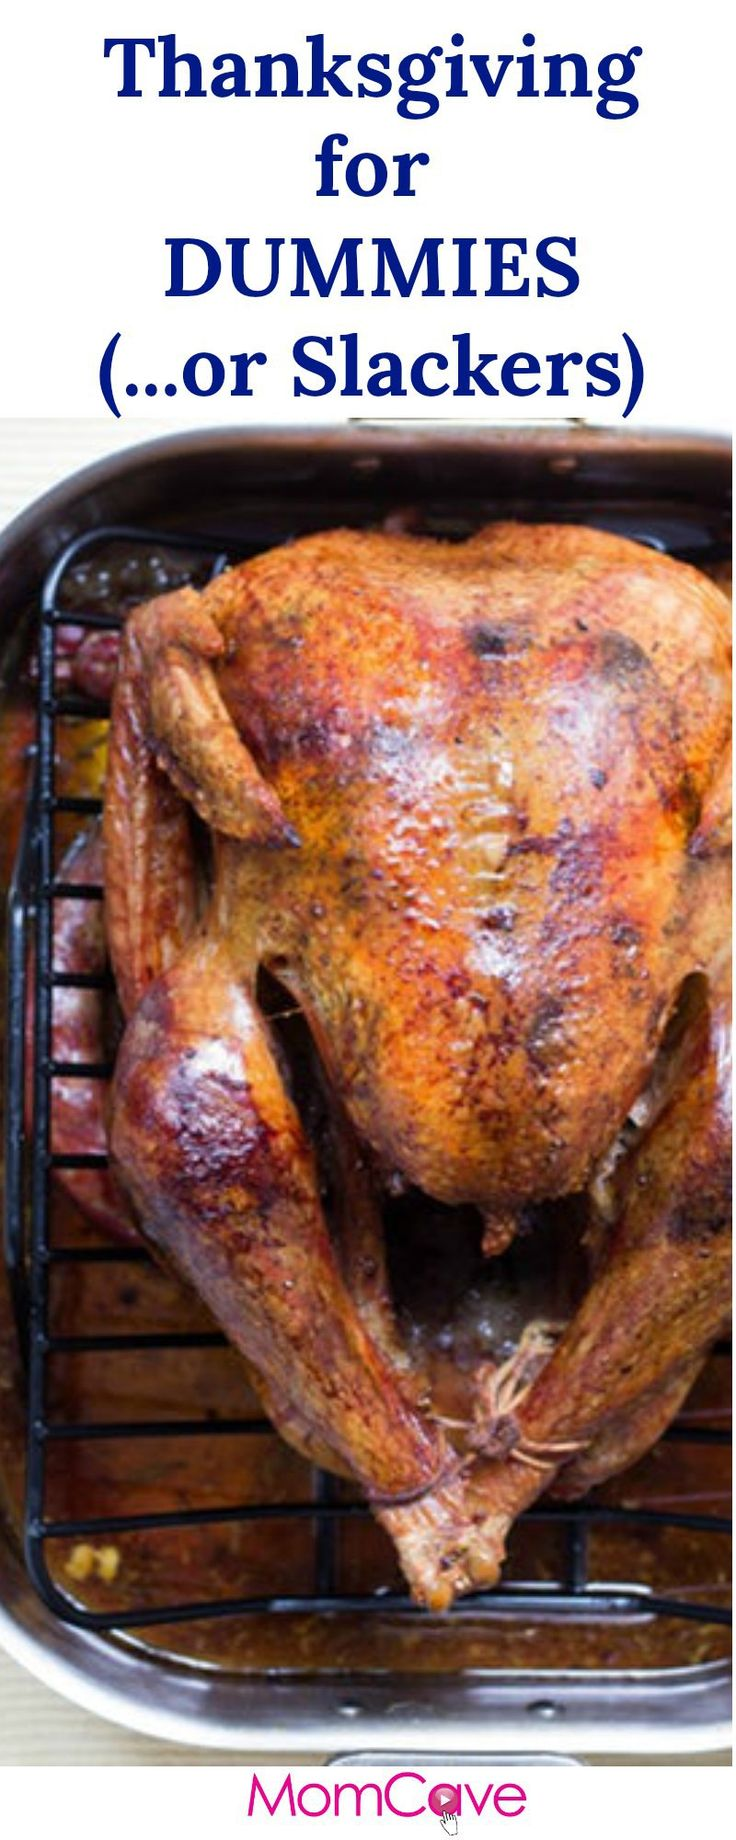 Thanksgiving for Dummies or Slackers... How long to thaw the turkey? How do you cook a turkey? We break it down.  MomCaveTV